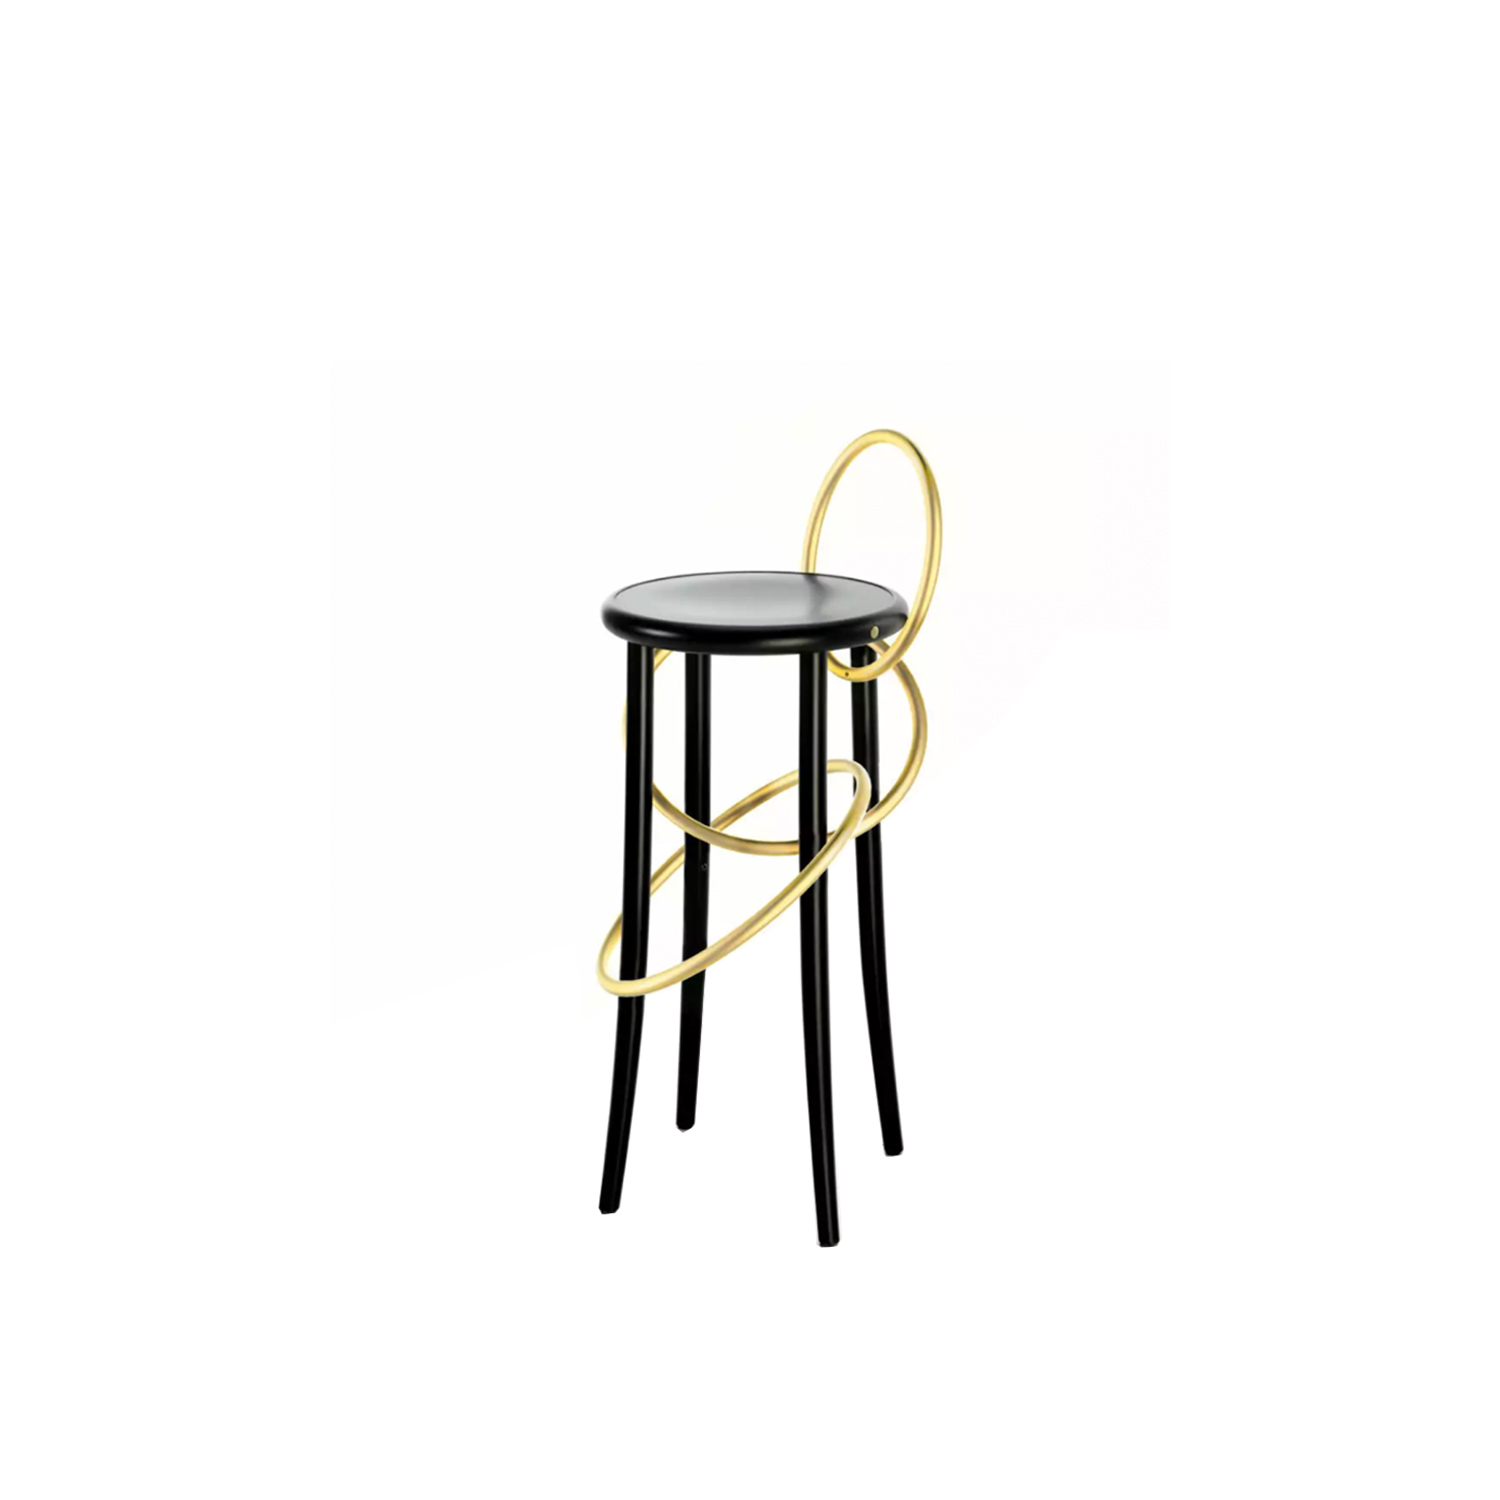 Cirque Upholstered Brass Rings Stool - The light and playful circus theme is at the core of the Cirque family of stools designed by Martino Gamper for Wiener GTV Design. The bent element, which is the brand's signature trait, is surprisingly and unexpectedly inserted in the base of the stool, forming the outline of the seat in the form of a chain comprising two or three wooden rings that loop around the full length of the stool legs. This striking styling effect blends in seamlessly with the functionality of the seat, which is available in two heights: a tall, sleek stool with or without backrest, Cirque L and Cirque M, and the stable and well-proportioned low stool, Cirque S.